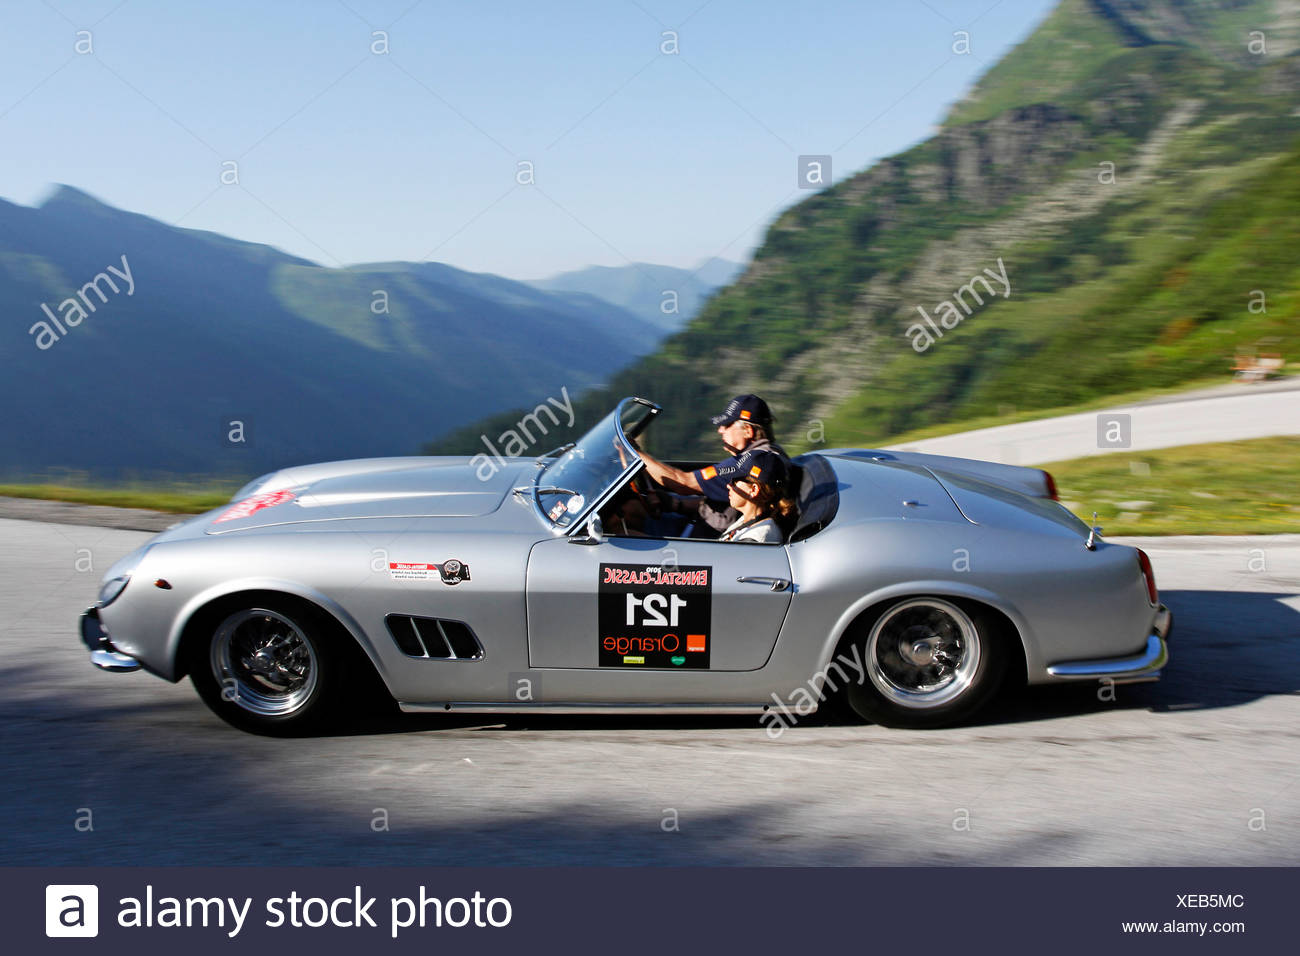 Ferrari 250 Gt Swb California Spyder Built In 1961 One Of The Most Expensive Ferrari Only 51 Units Were Built Soelkpass Stock Photo Alamy